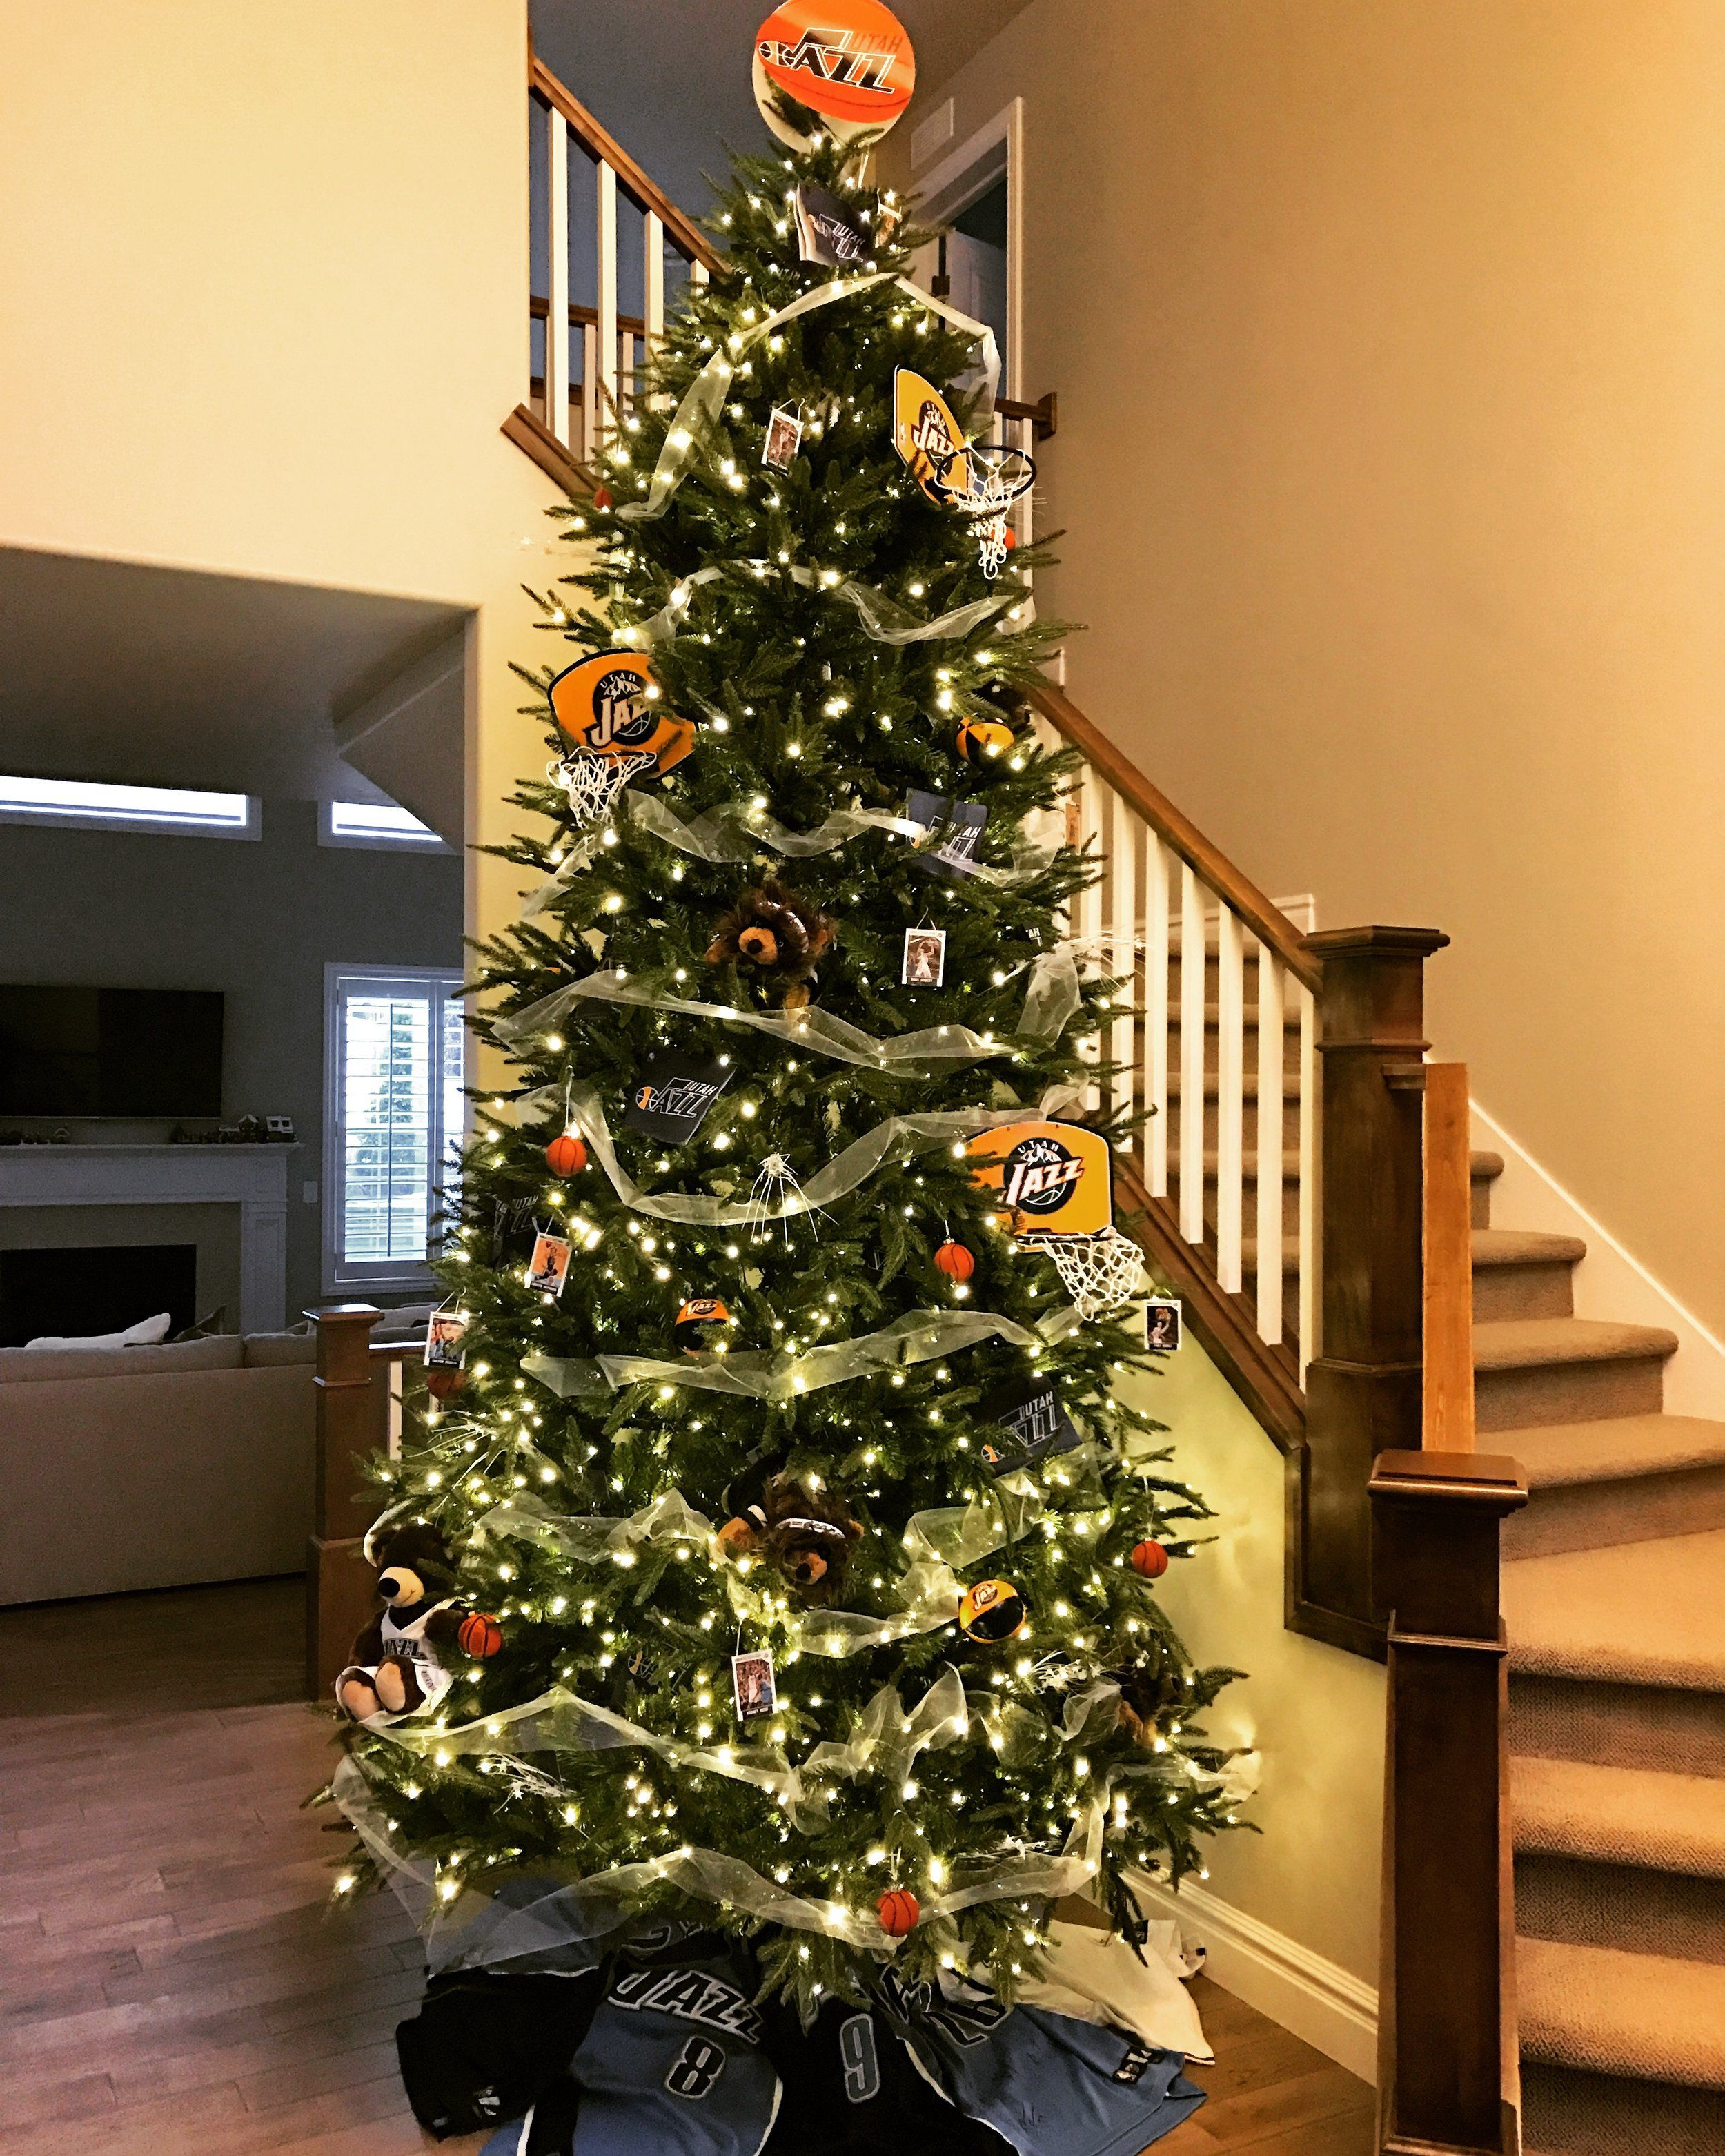 Christmas Trees To Remember 2016 Katie The Creative Lady Christmas Tree Tree Christmas